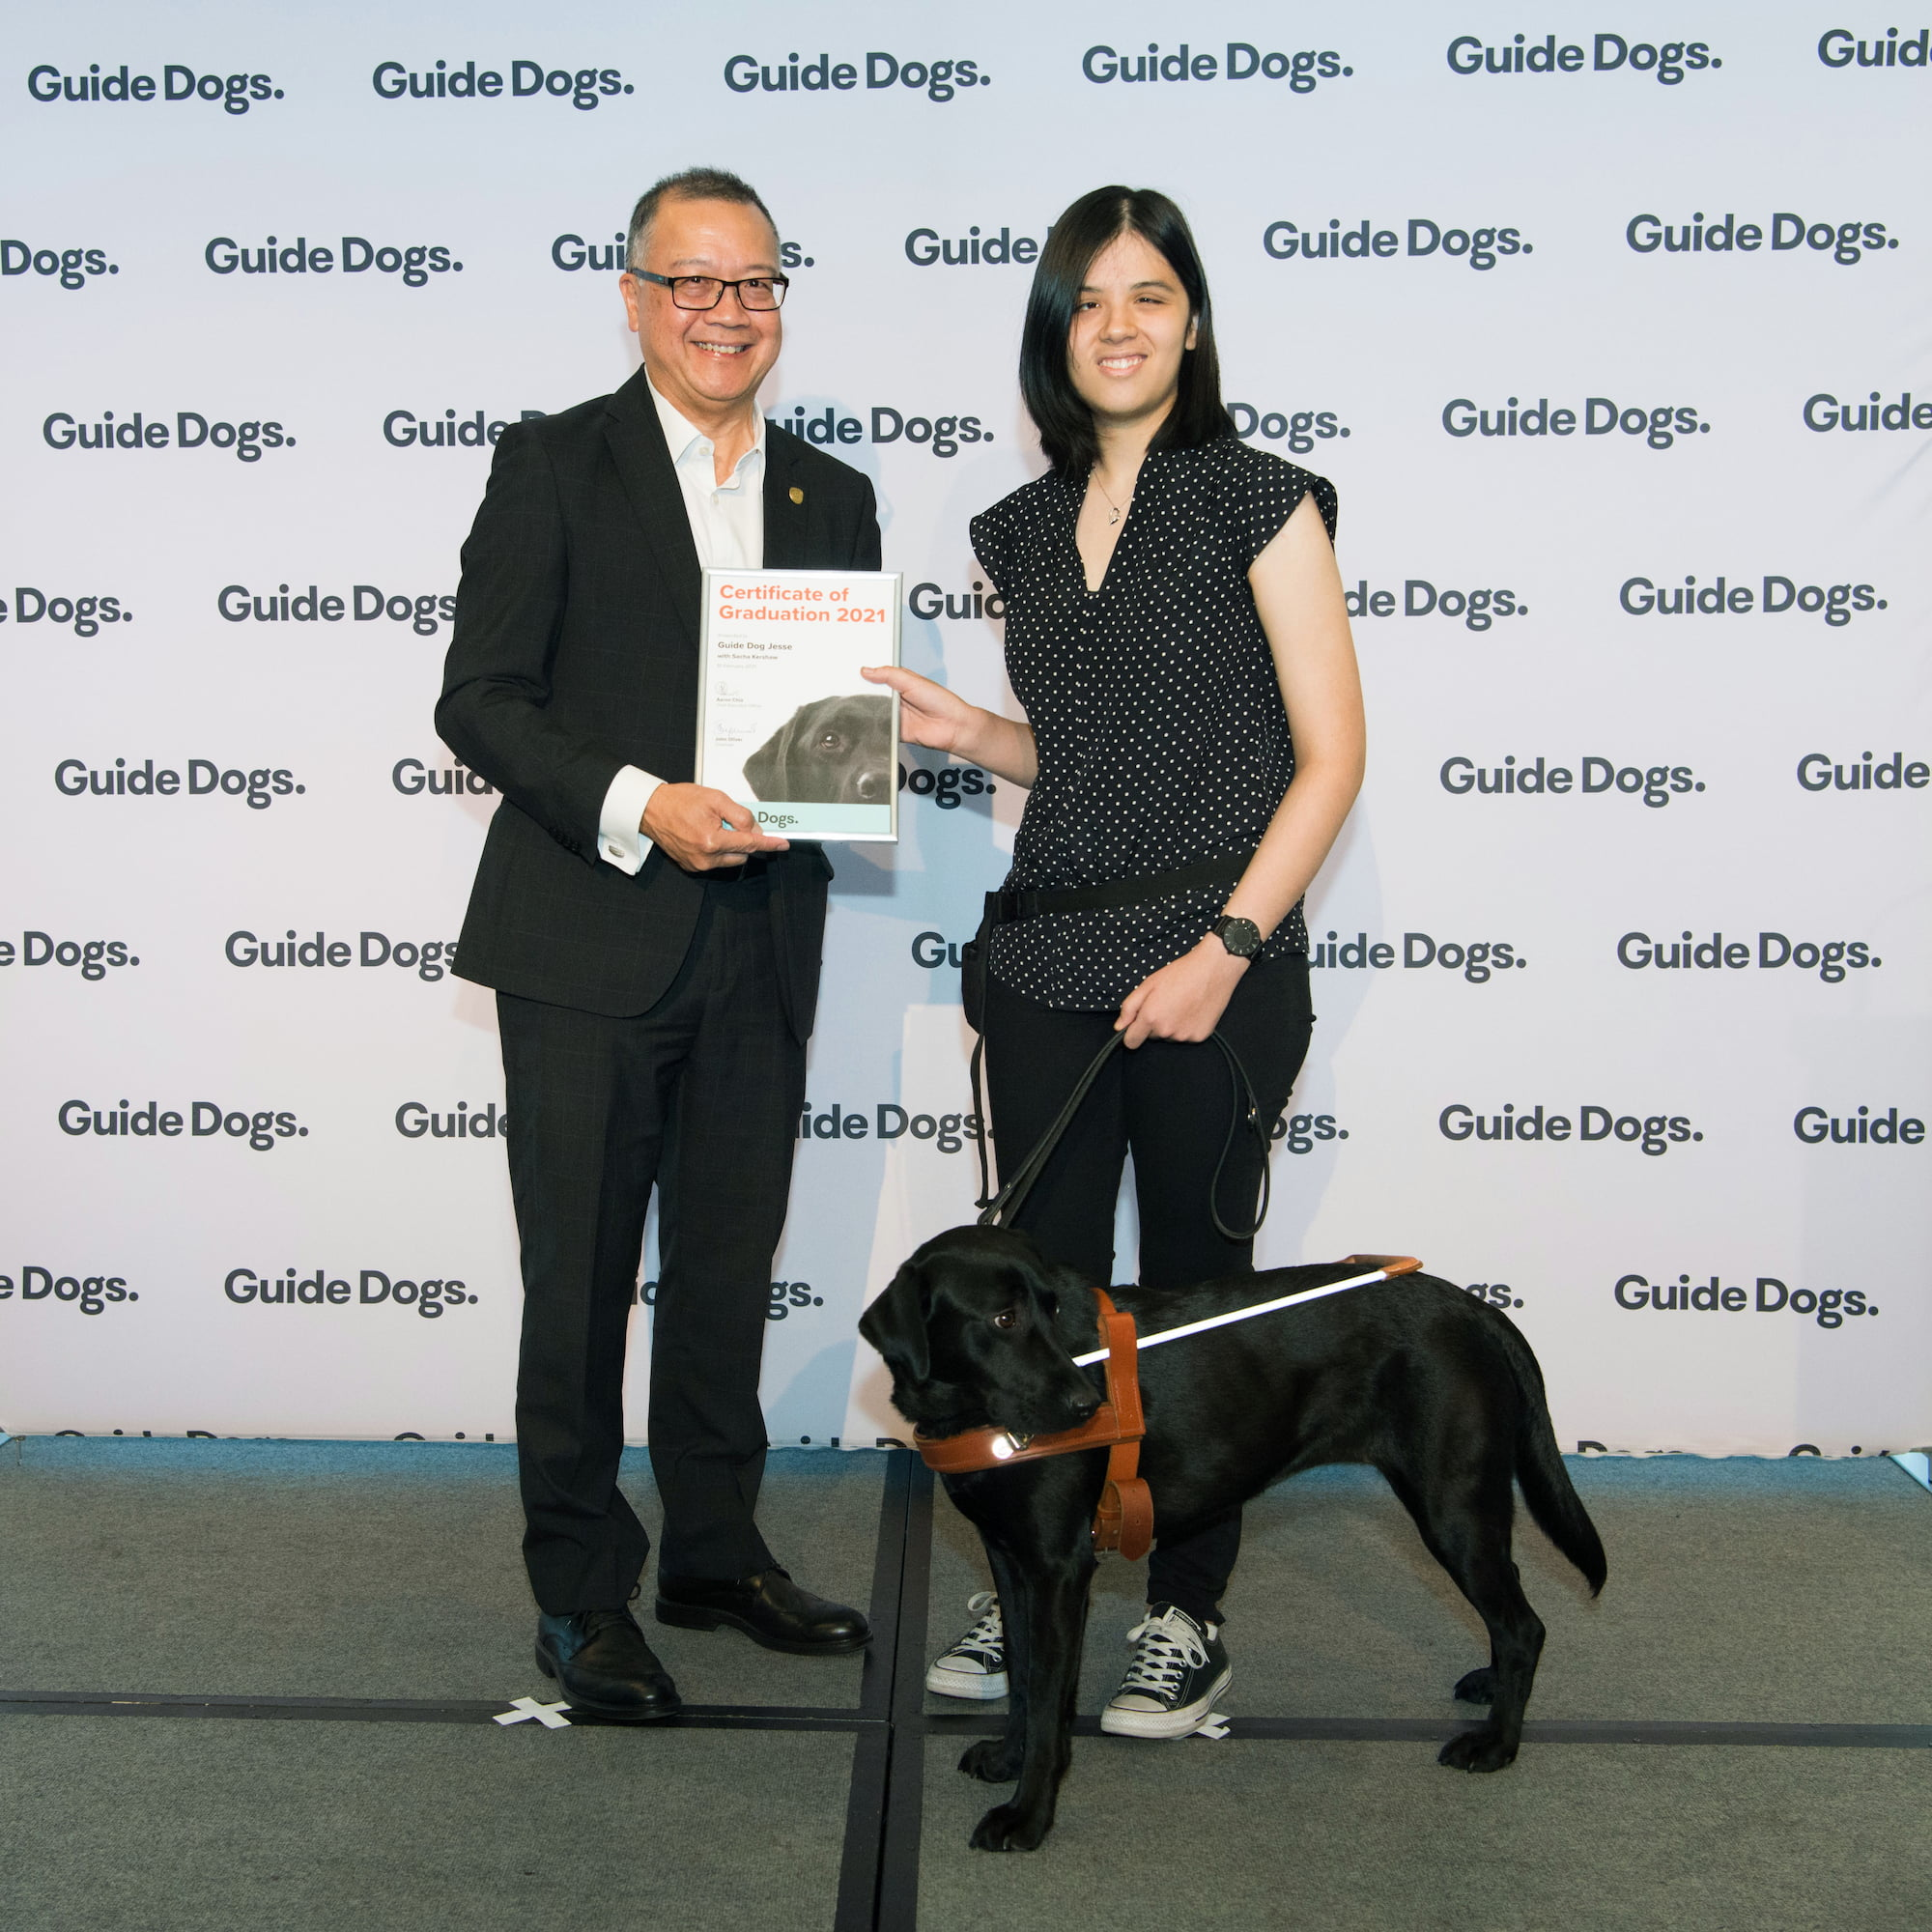 Guide Dogs SA/NT CEO Aaron Chia standing on stage with Guide Dogs Client Sacha and her Guide Dog Jesse, a black Labrador who is wearing a harness. Aaron is presenting Sacha with a certificate.